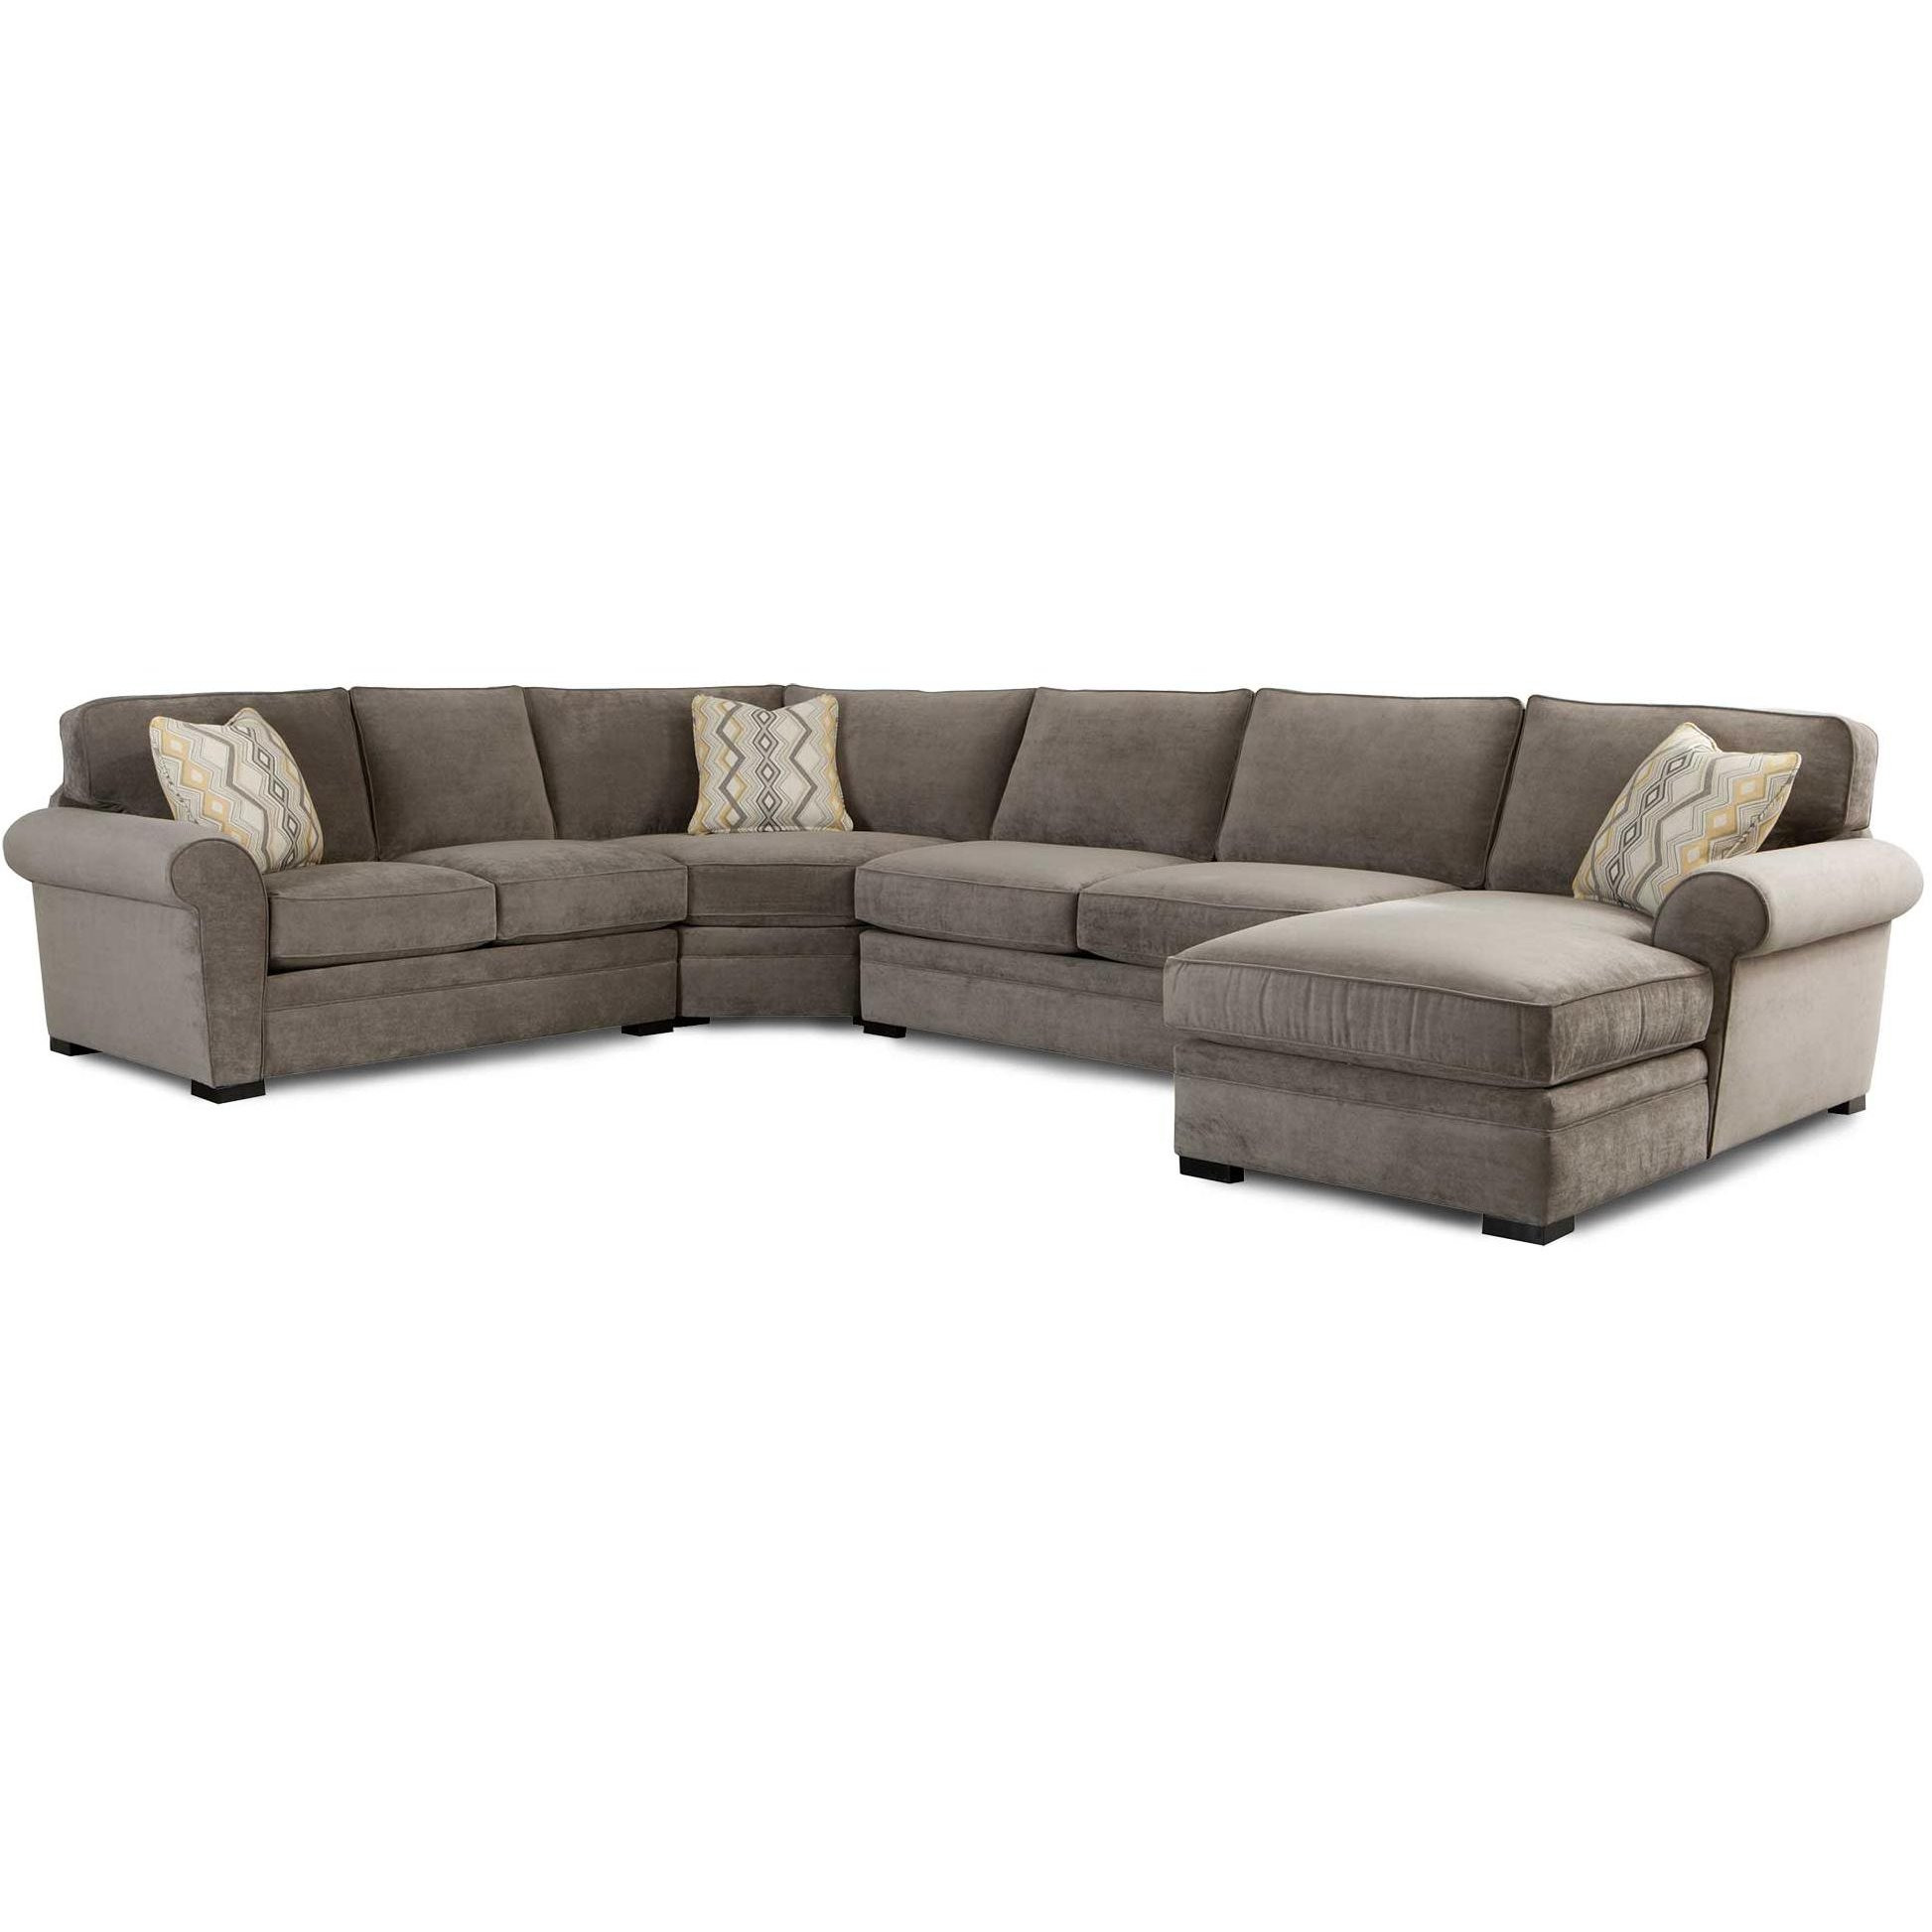 Gray Casual Contemporary 4-Piece Sectional - Orion ...  sc 1 st  RC Willey : cordoba 2 piece sectional - Sectionals, Sofas & Couches